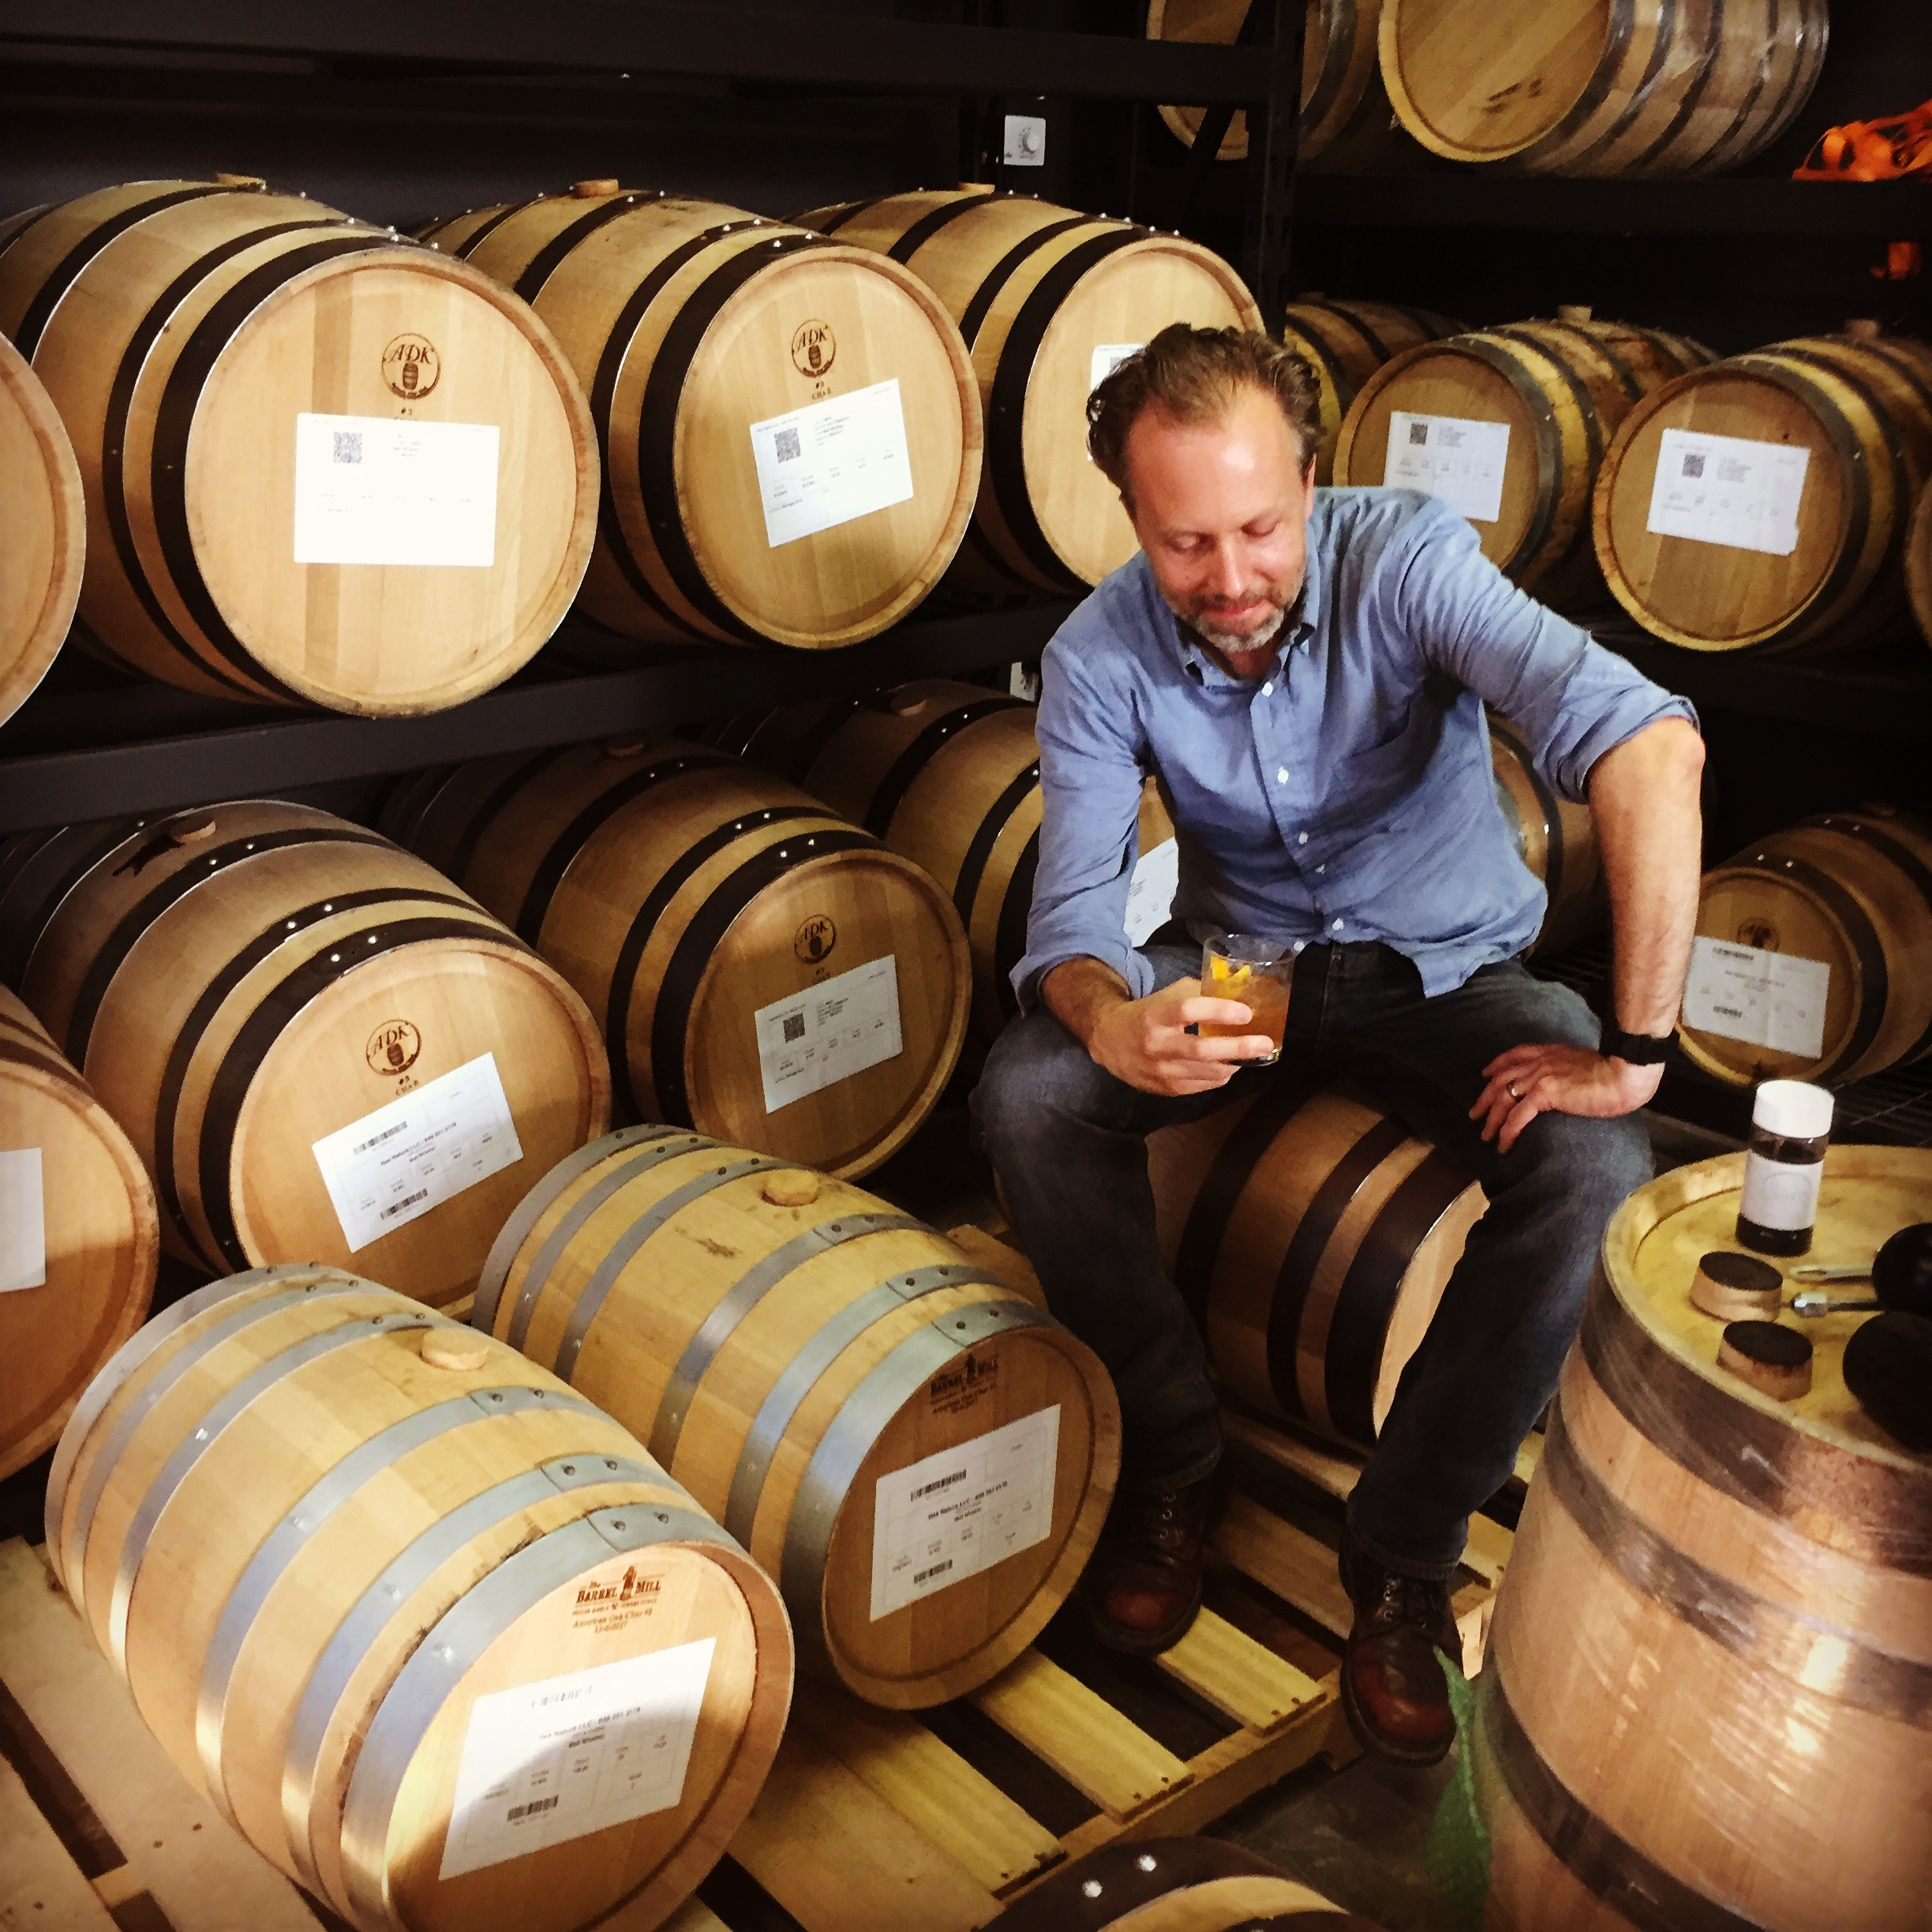 Gil Spaier, Founder and Distiller with Adirondack Barrel Cooperage Barrels, in the All Points West Barrel Room.